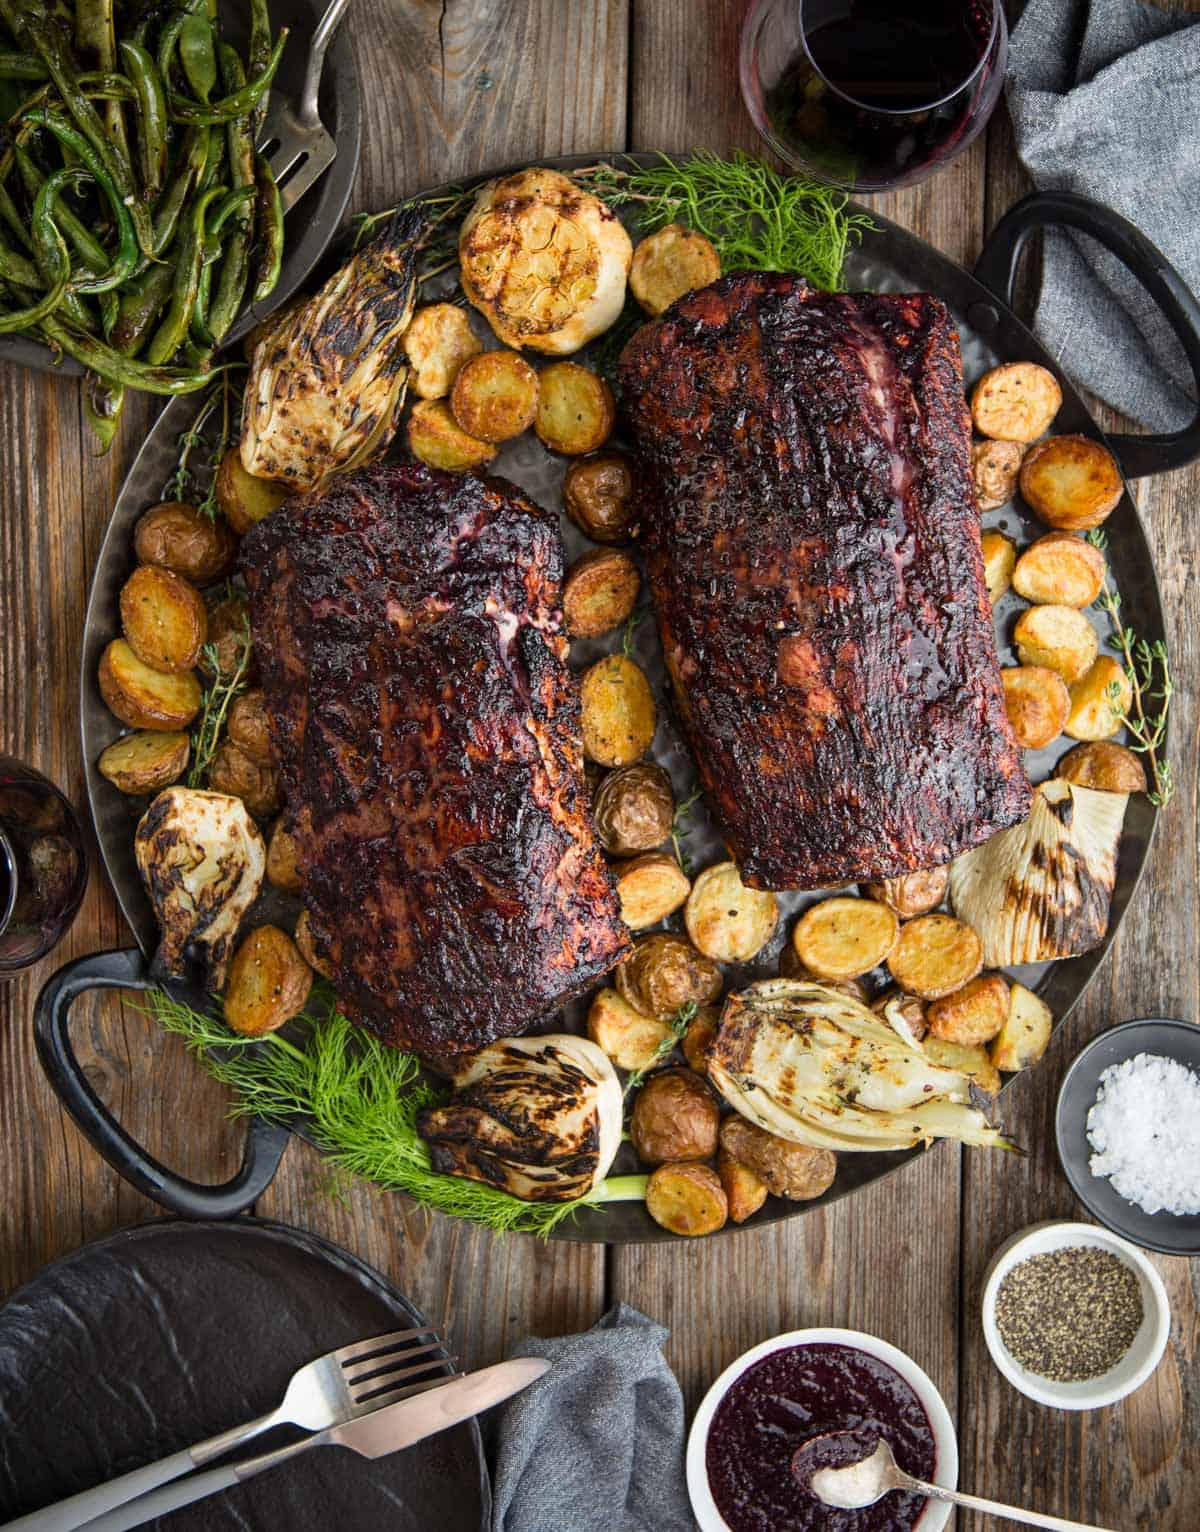 Two Grilled Pork Loins on a platter with roasted vegetables